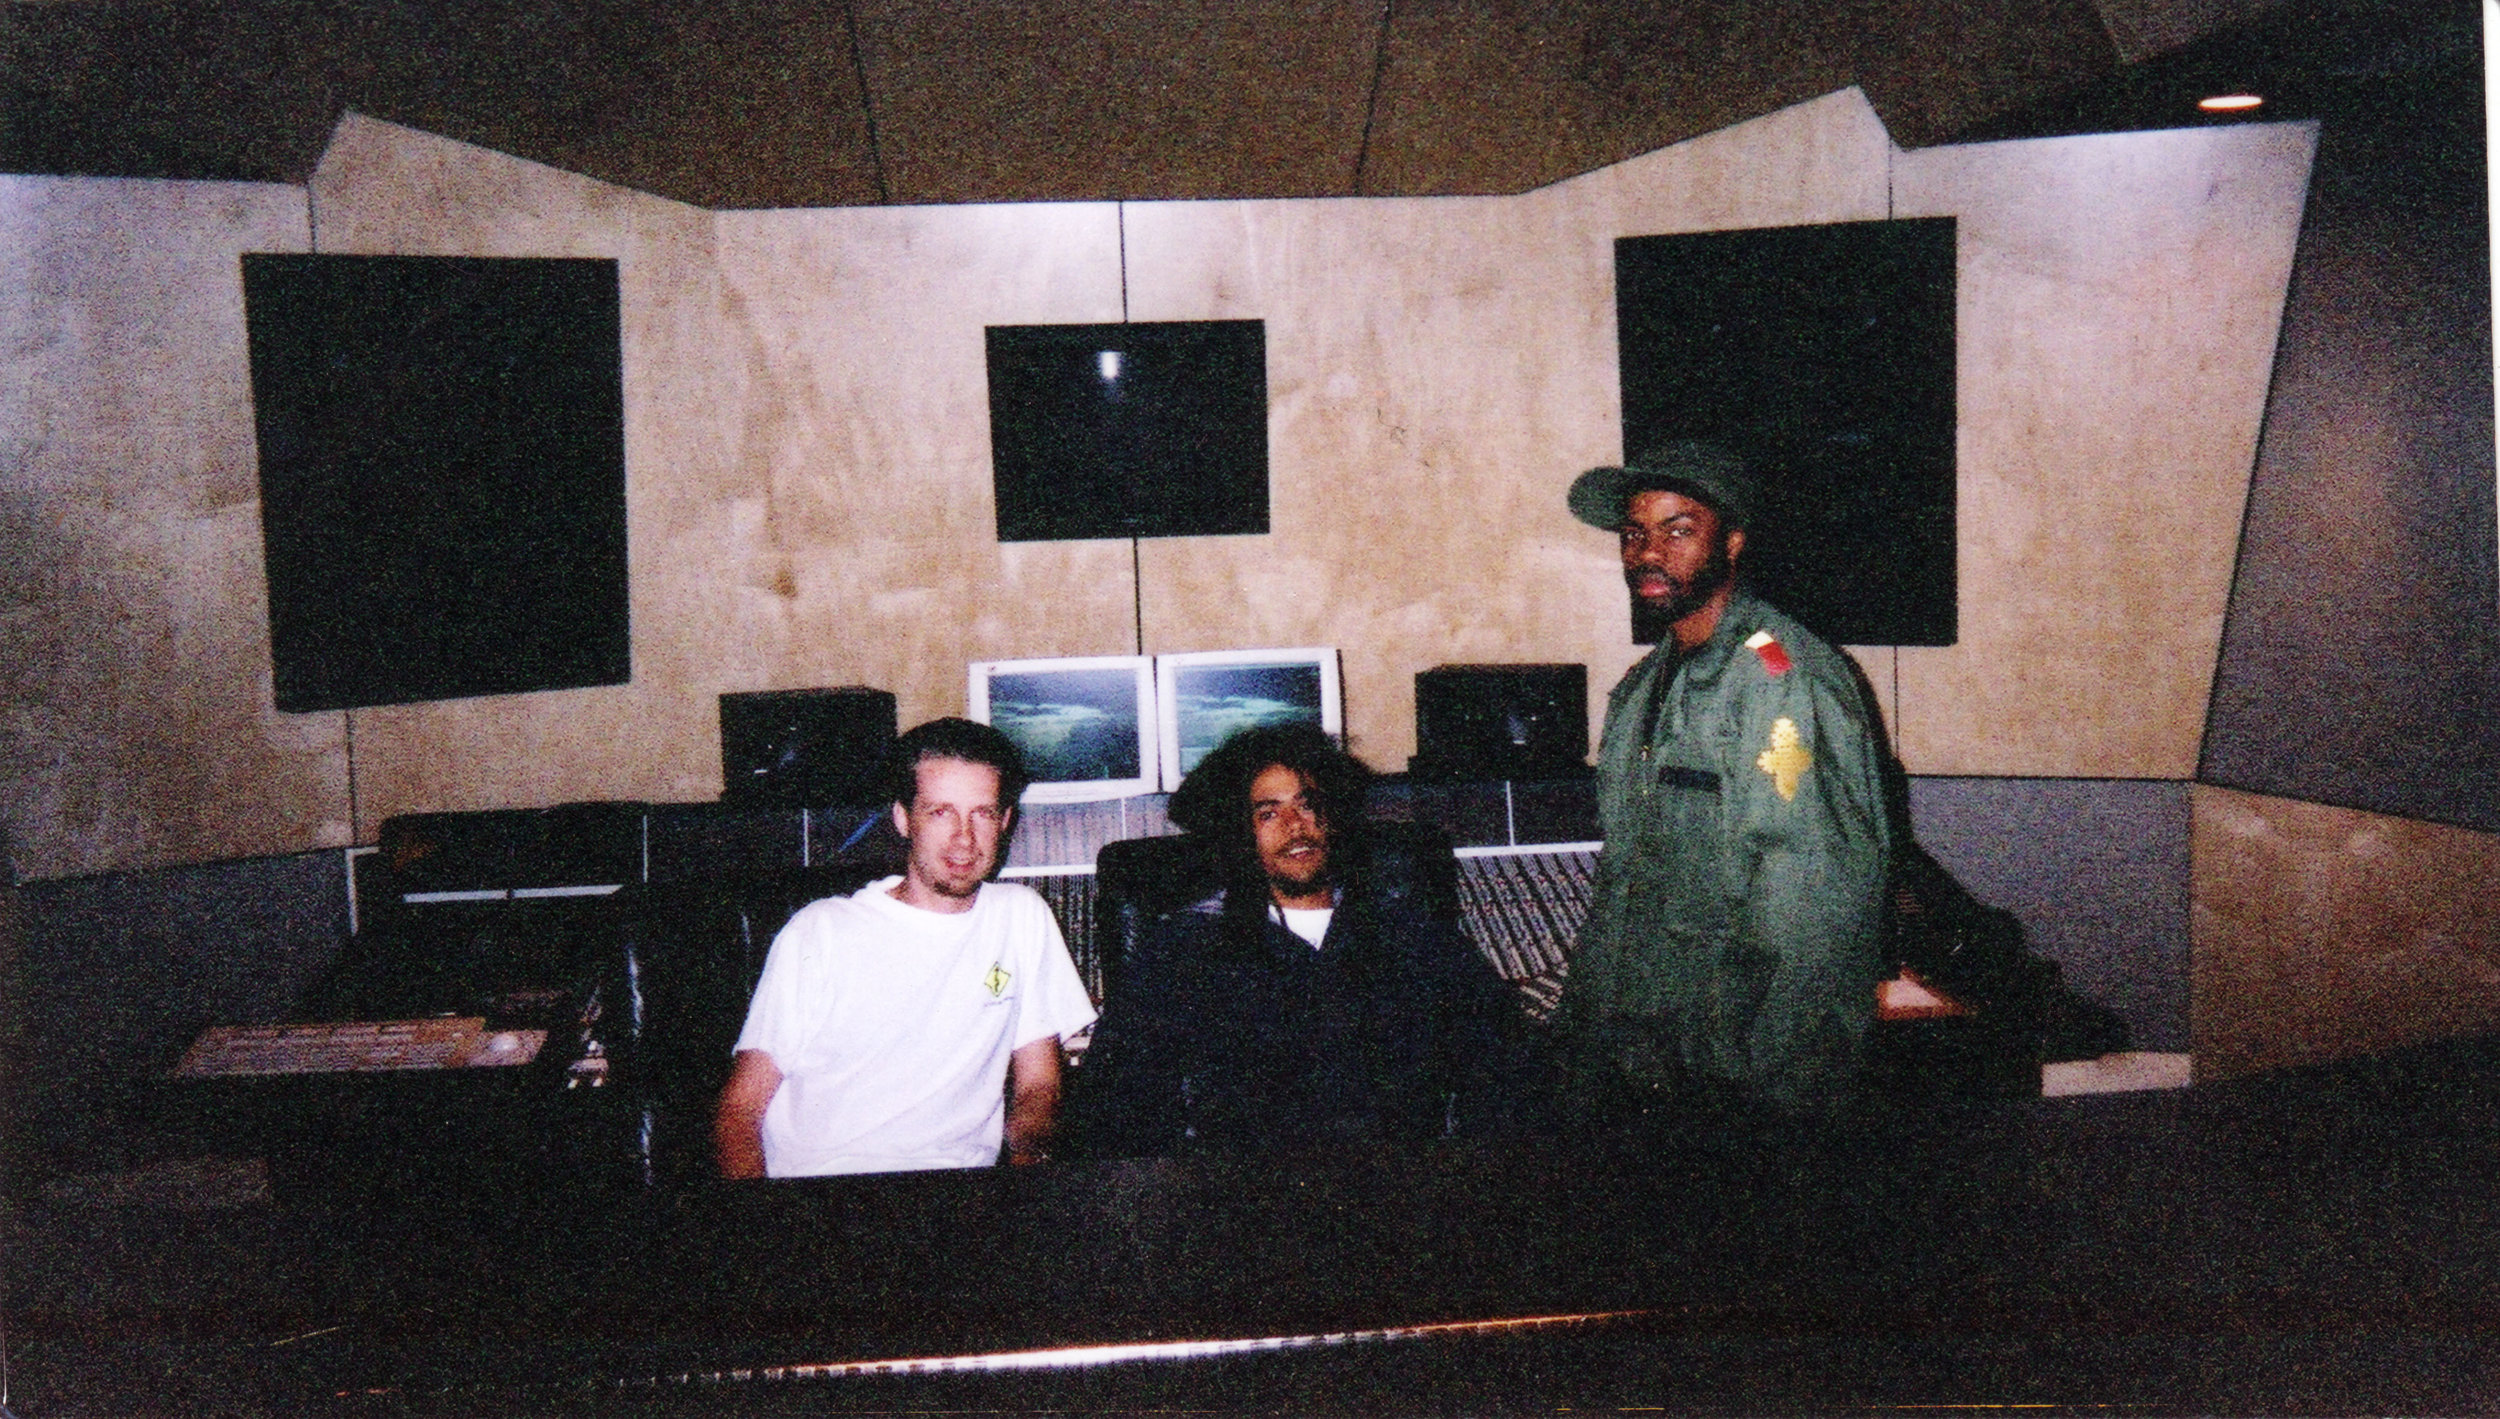 In Session with The Marley Brothers (Damien Marley in pic) at Luminous Sound